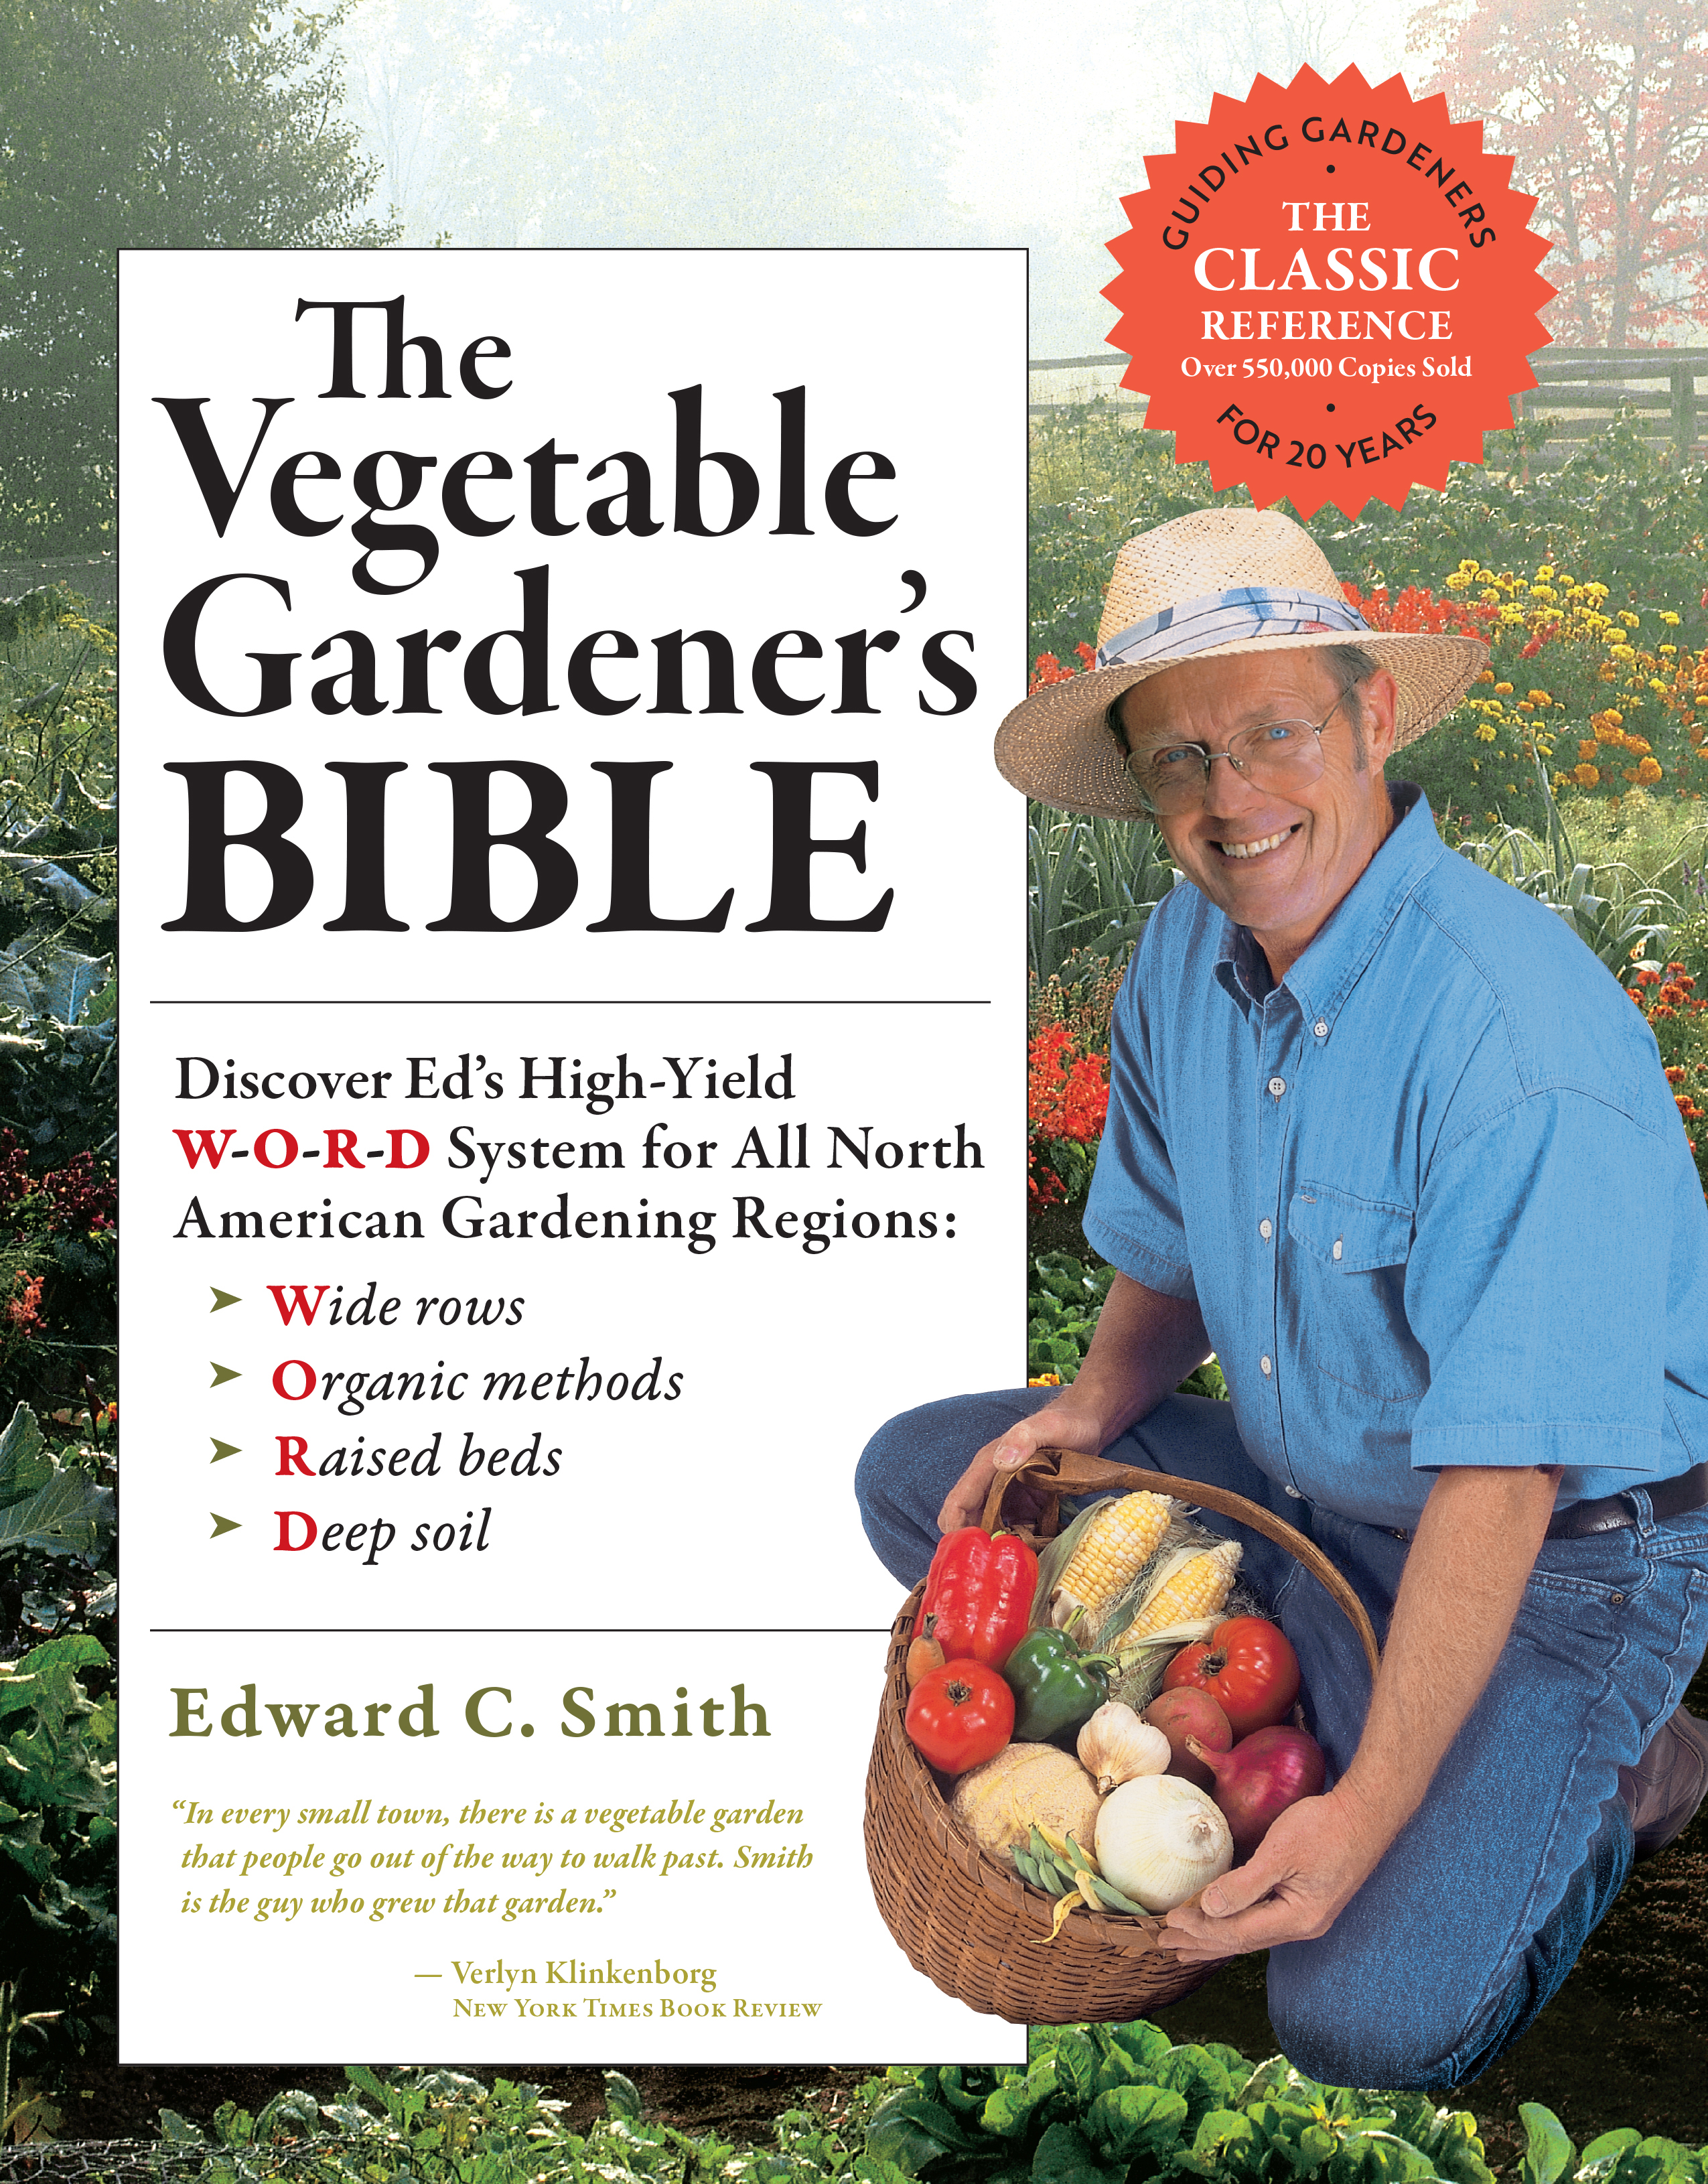 Cover Image of The Vegetable Gardener's Bible, 2nd Edition